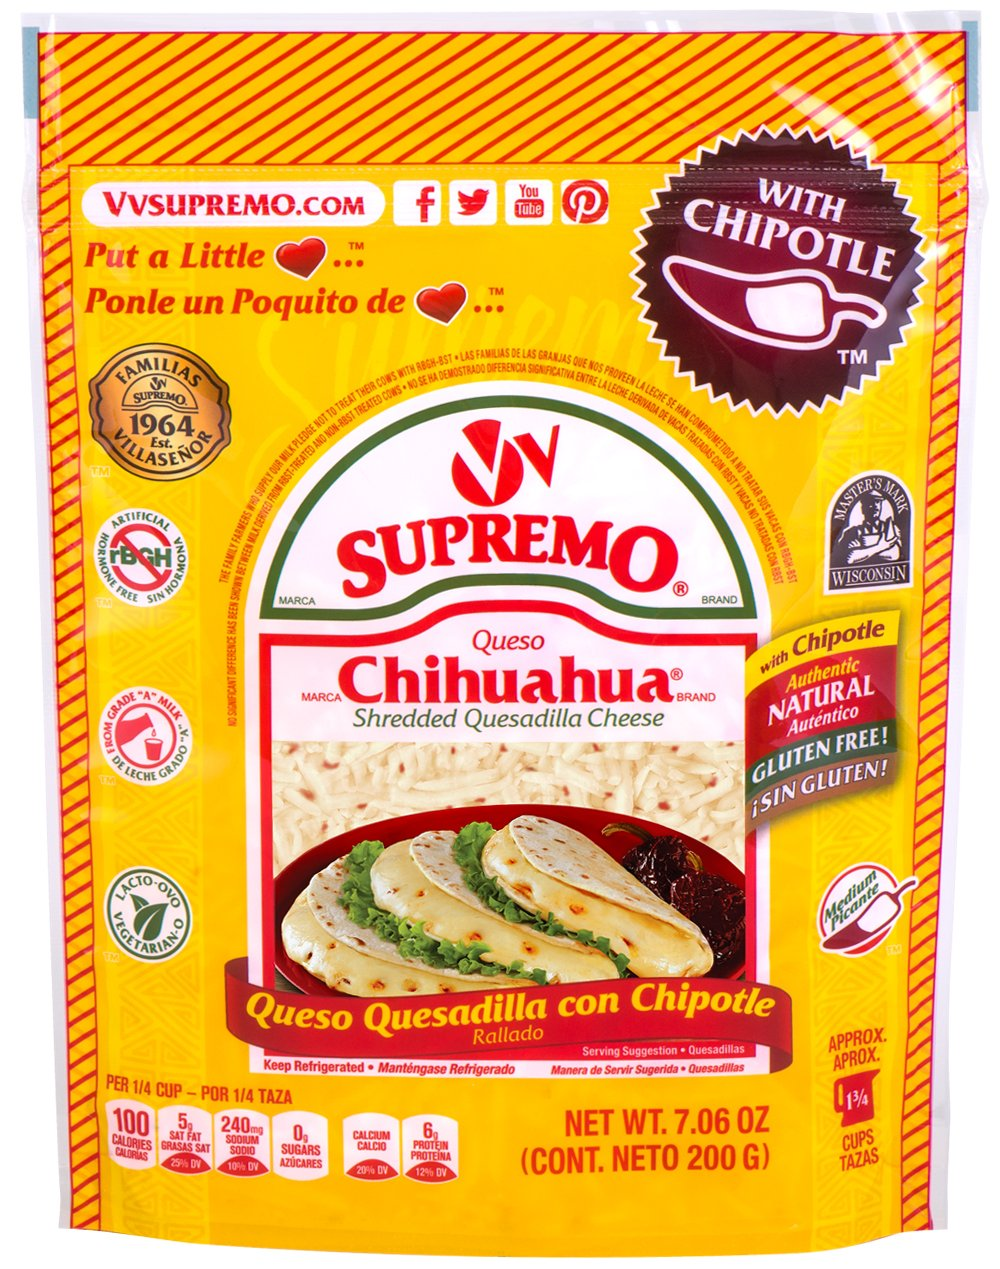 V&V Supremo, Shredded Chipotle Cheese, 7.06 oz